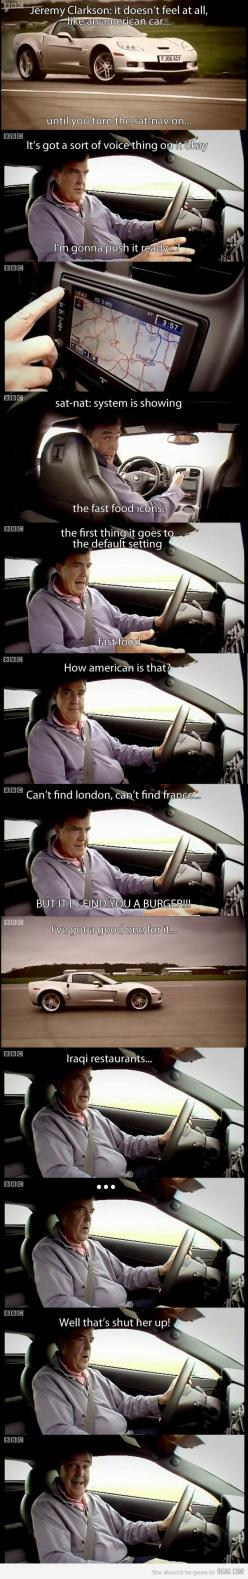 top gear! It's especially funny if you watch he show and can hear his voice as you read it.: Jeremy Clarkson, American Cars, Top Gear, Tops, Funny Stuff, Funnies, Topgear, Gears